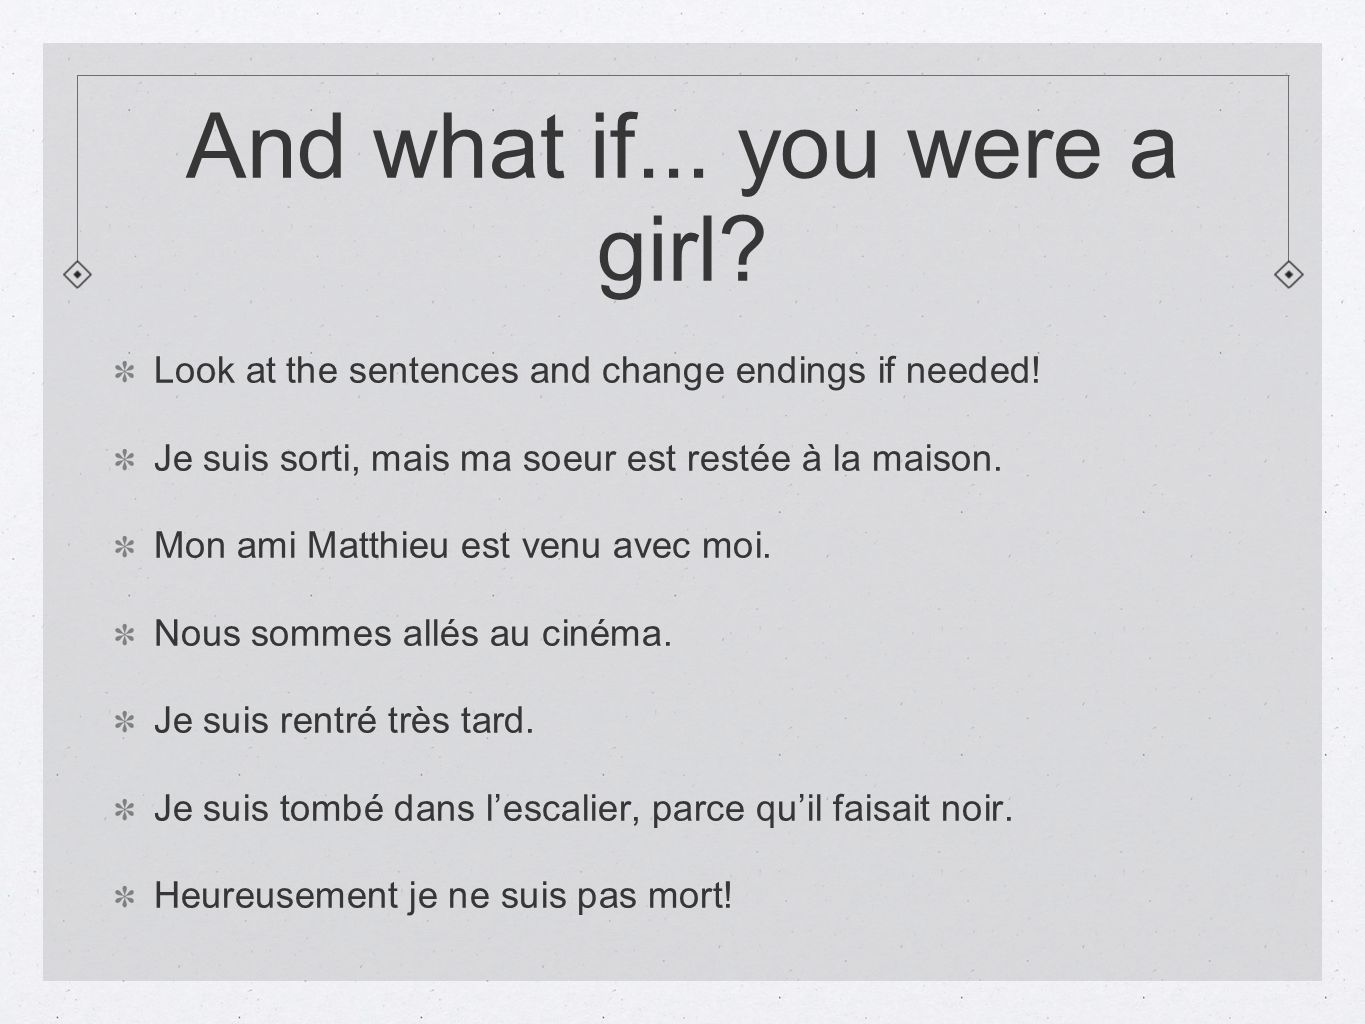 And what if... you were a girl